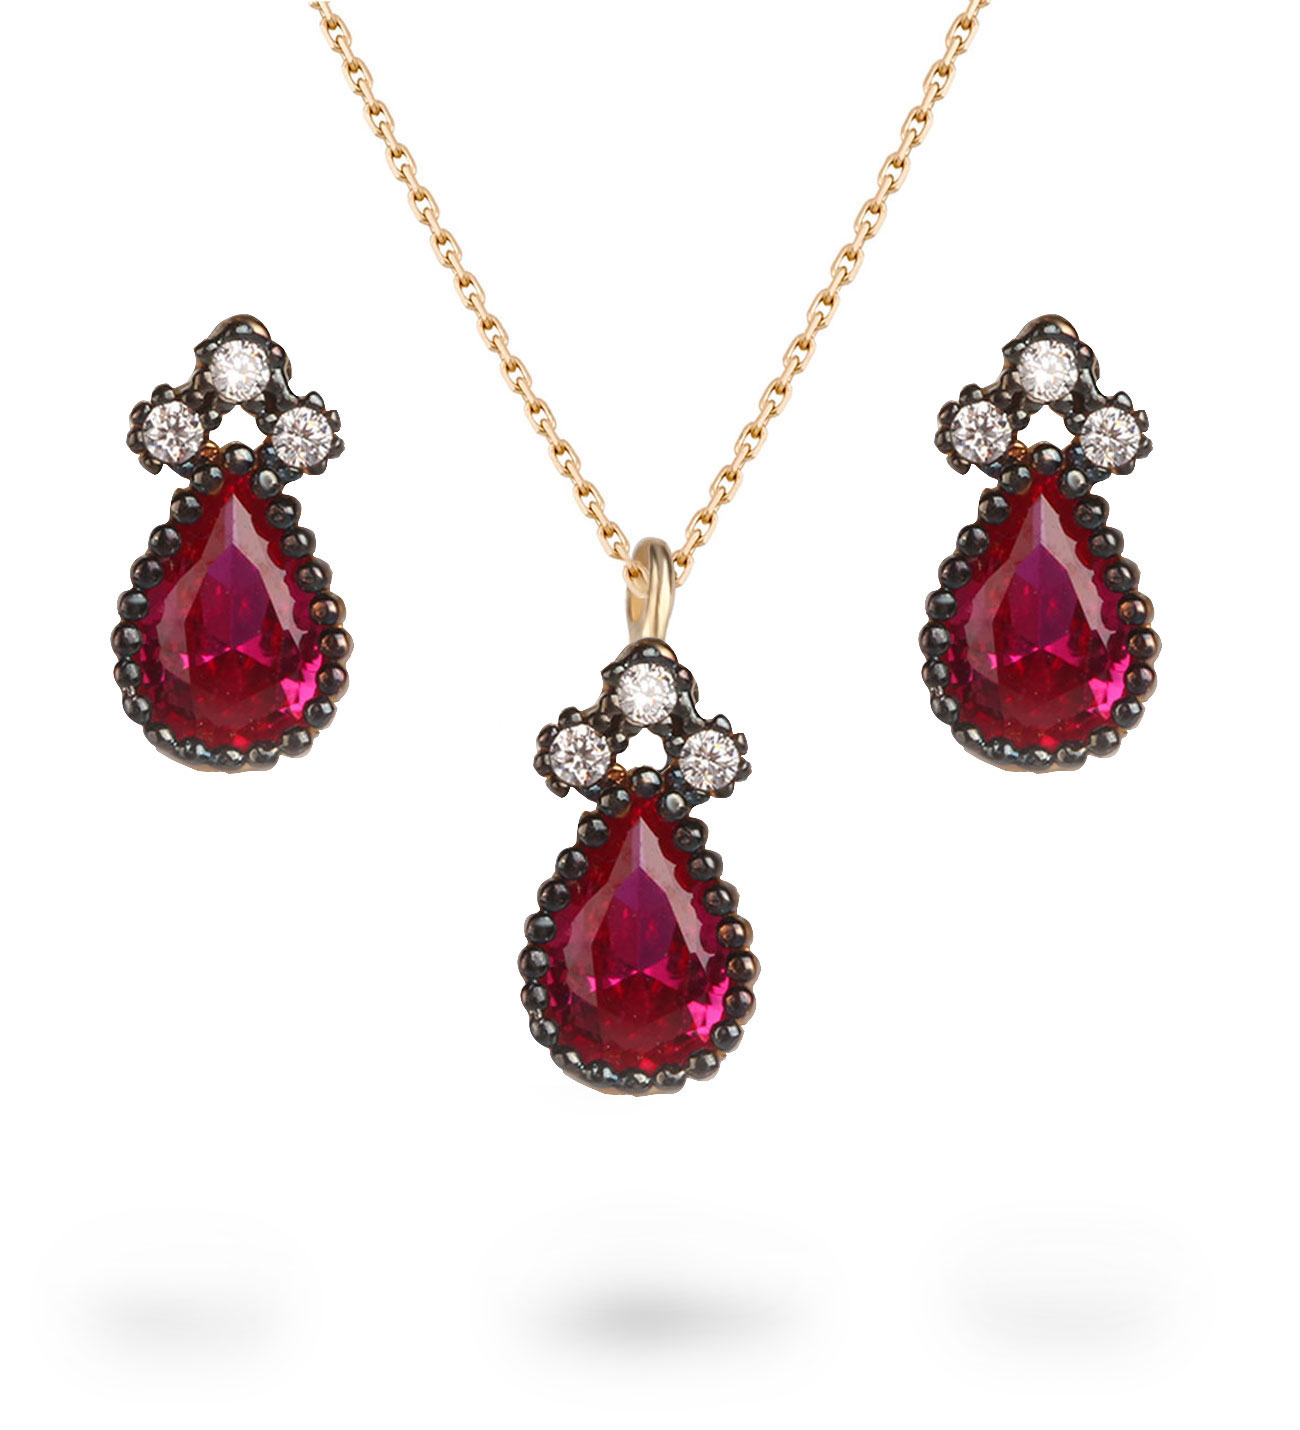 Women's Red Zircon Gemmed Gold Necklace & Earrings Set